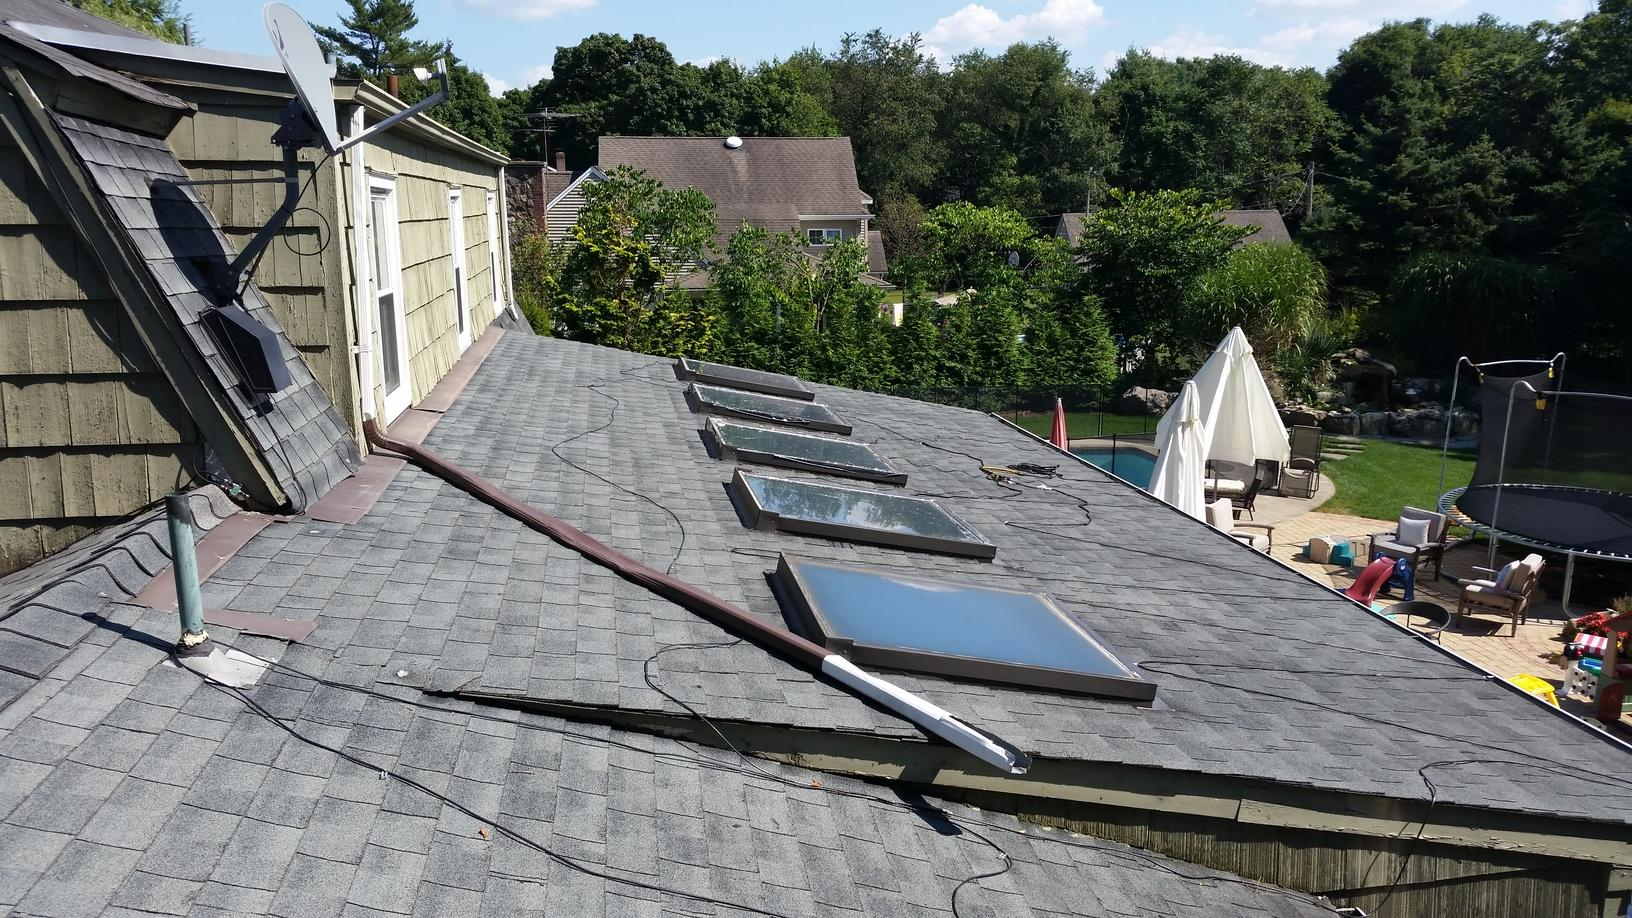 Global Home Improvement Roof Replacement Photo Album Charcoal Grey Standing Seam Metal Roof Installation On Gambrel Style Roof In Franklin Lakes Nj